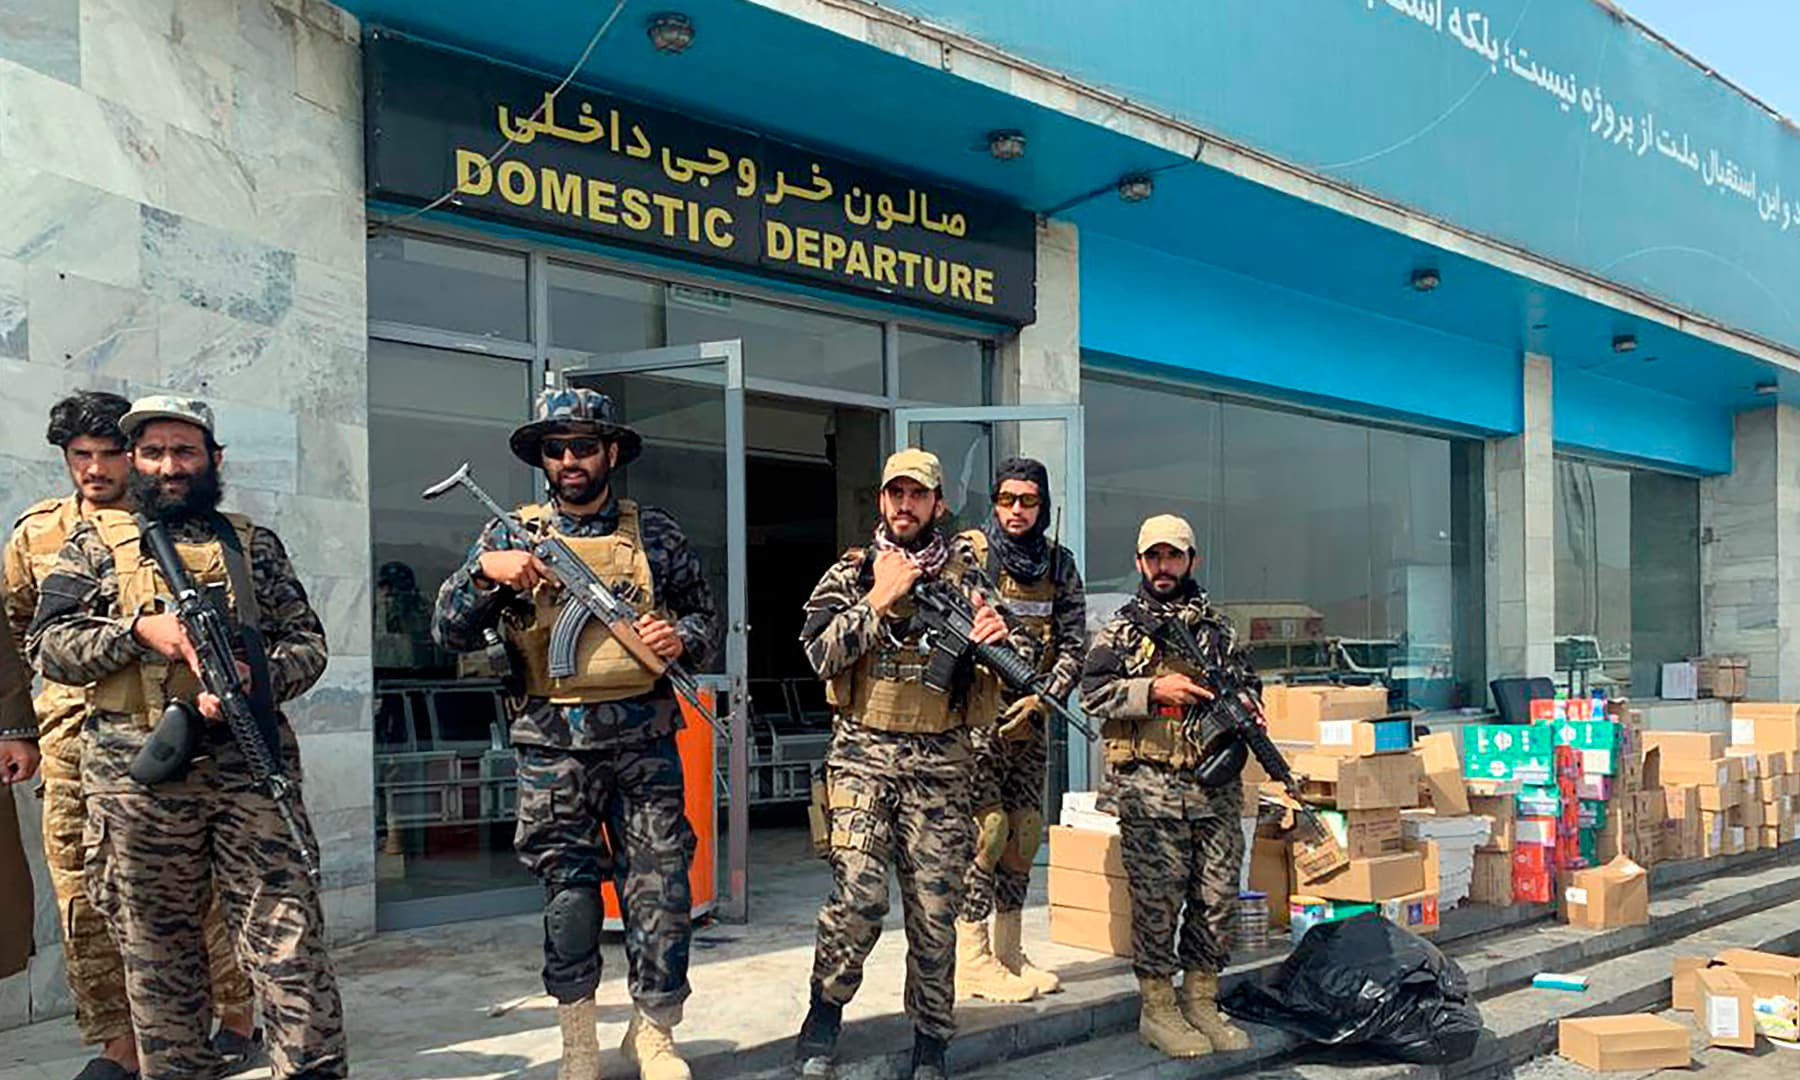 Taliban fighters stand guard inside the Hamid Karzai International Airport after the US withdrawal in Kabul, Afghanistan on August 31, 2021. — AP